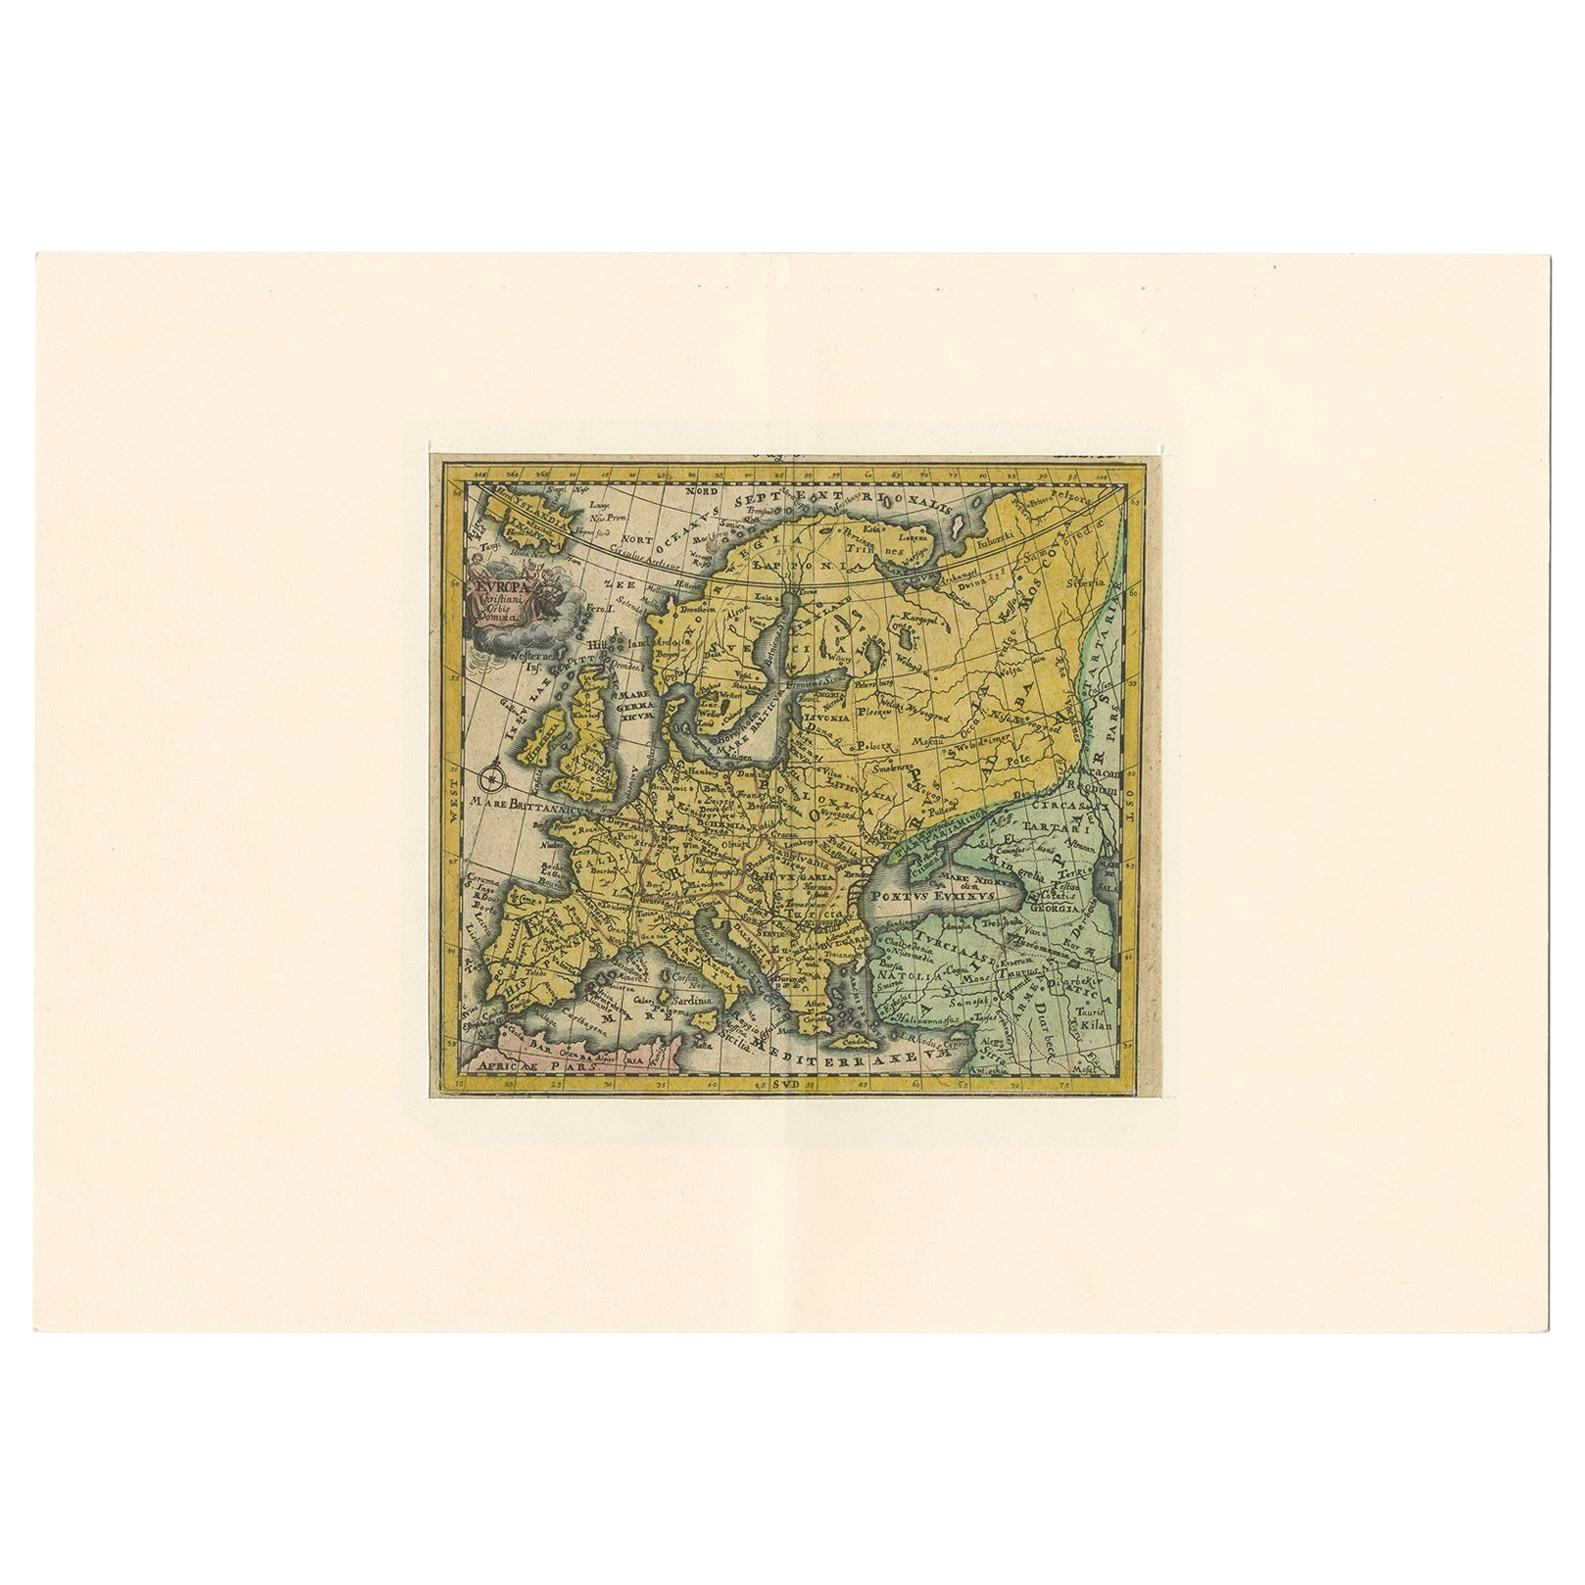 Antique Map of Europe by Hederichs, circa 1740